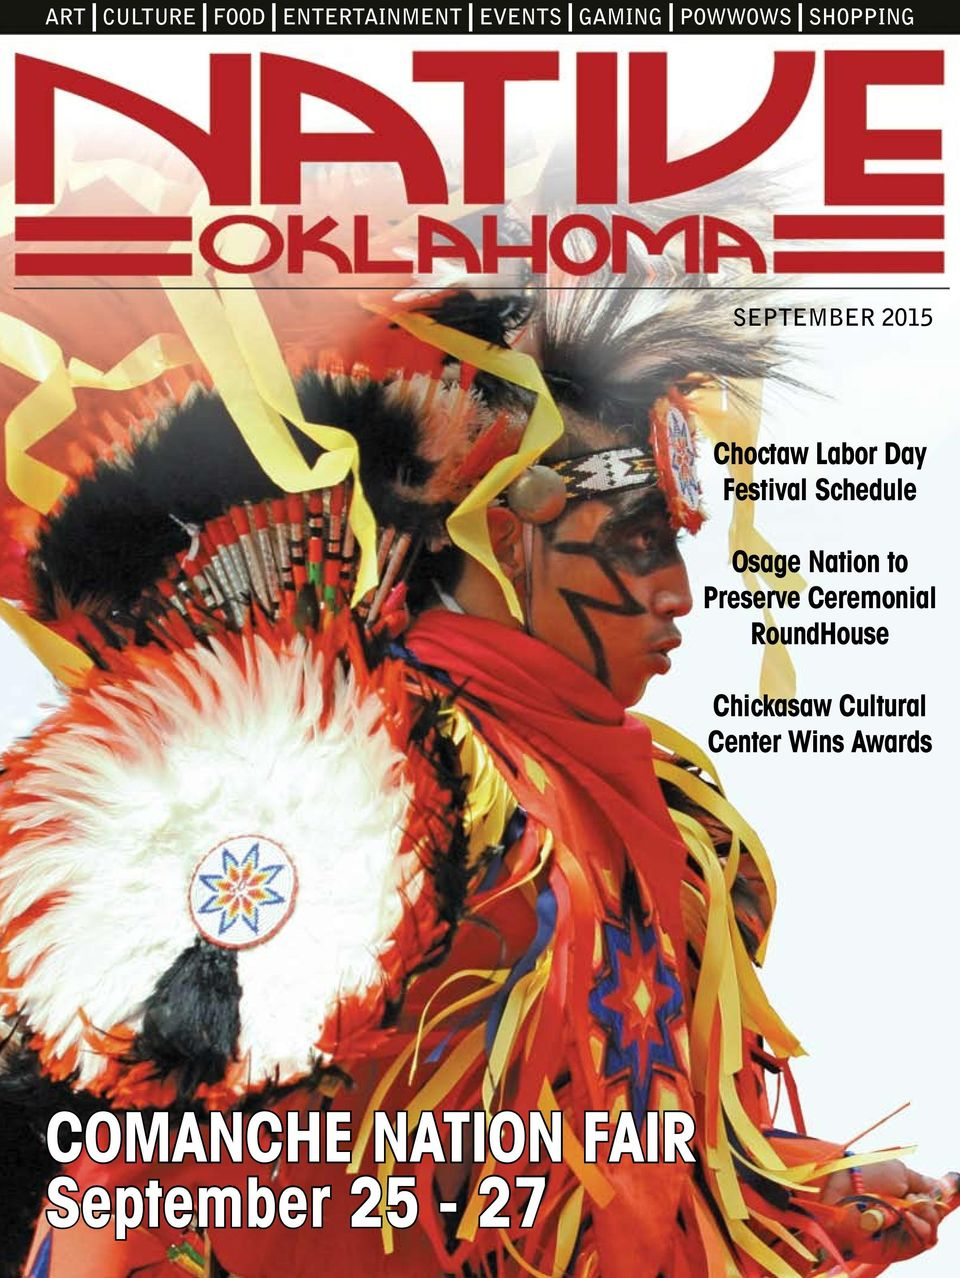 Festival Schedule Osage Nation to Preserve Ceremonial RoundHouse